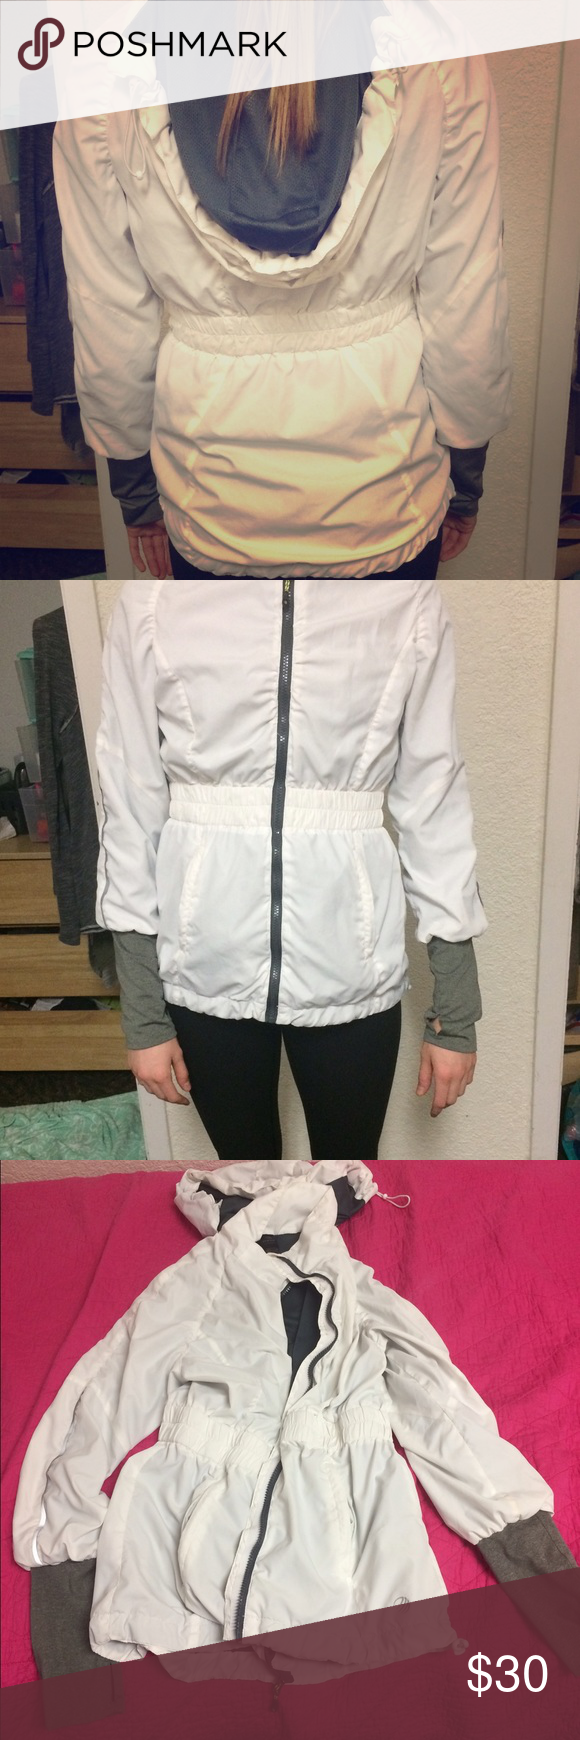 White jacket in great condition!! White with gray inside and sleeves wind breaker/rain jacket type of coat! Looks super cute when running, going outside, or for a cute sporty look! Got several compliments on it but have just had it for awhile so looking for a change! ☂️ MPG Jackets & Coats